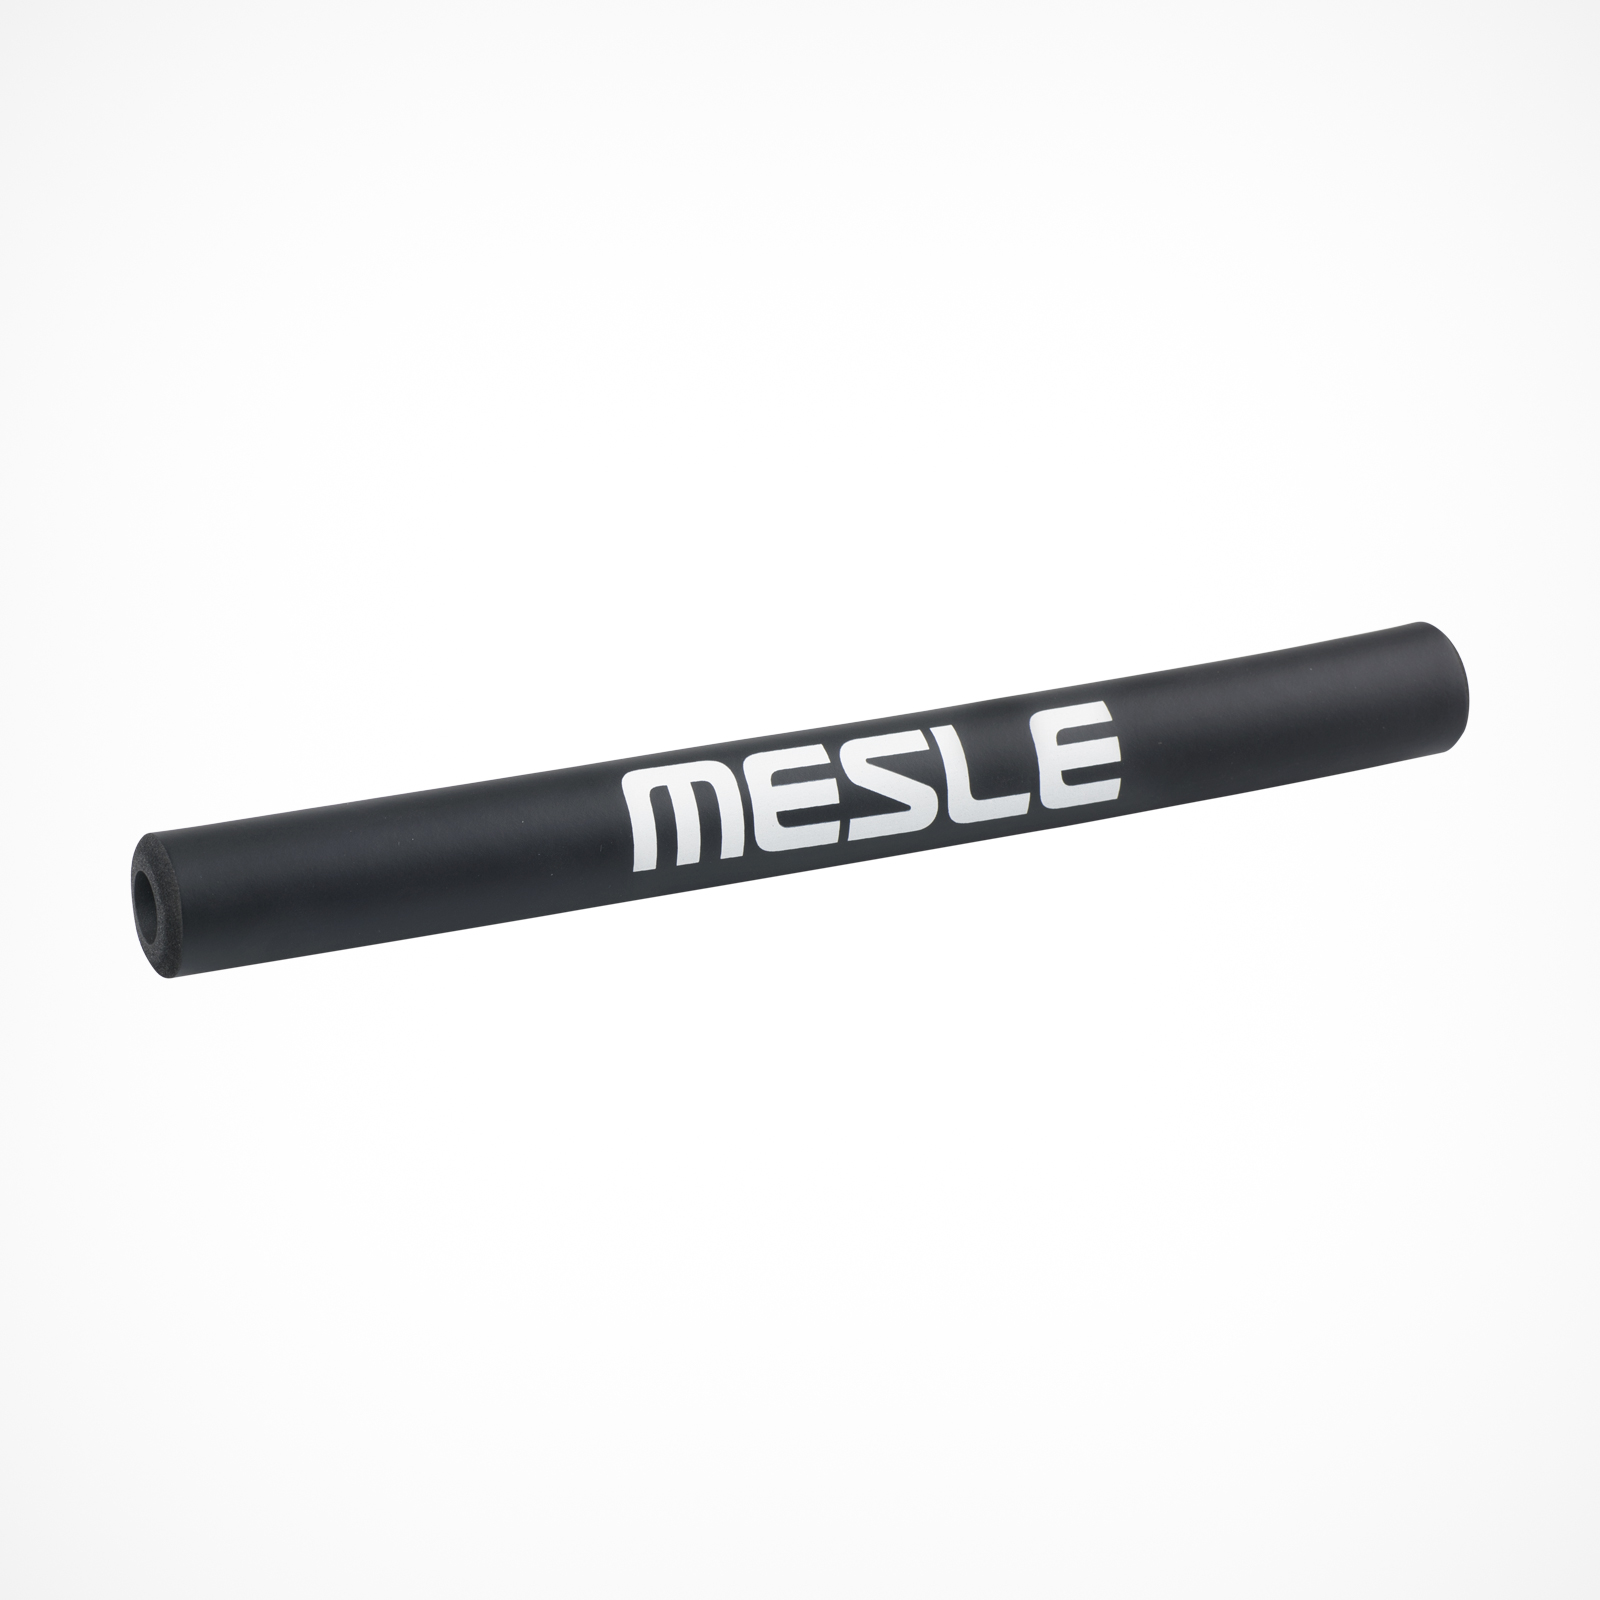 Mesle Pencil Float 228 x 22 mm for Watersport Ropes and Lines, black